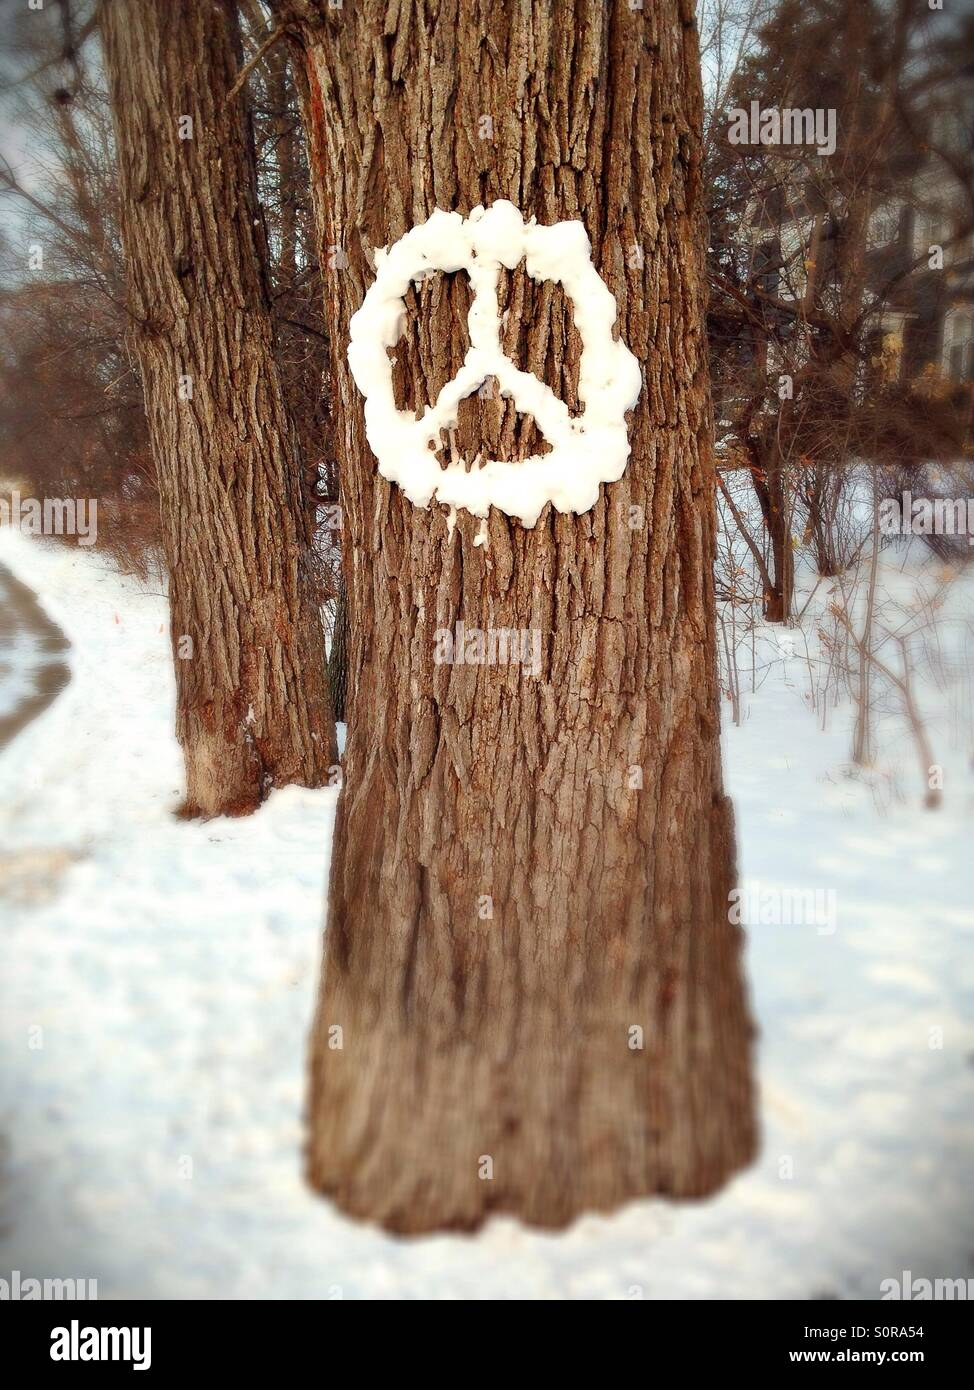 A peace sign made of snow on a tree. - Stock Image